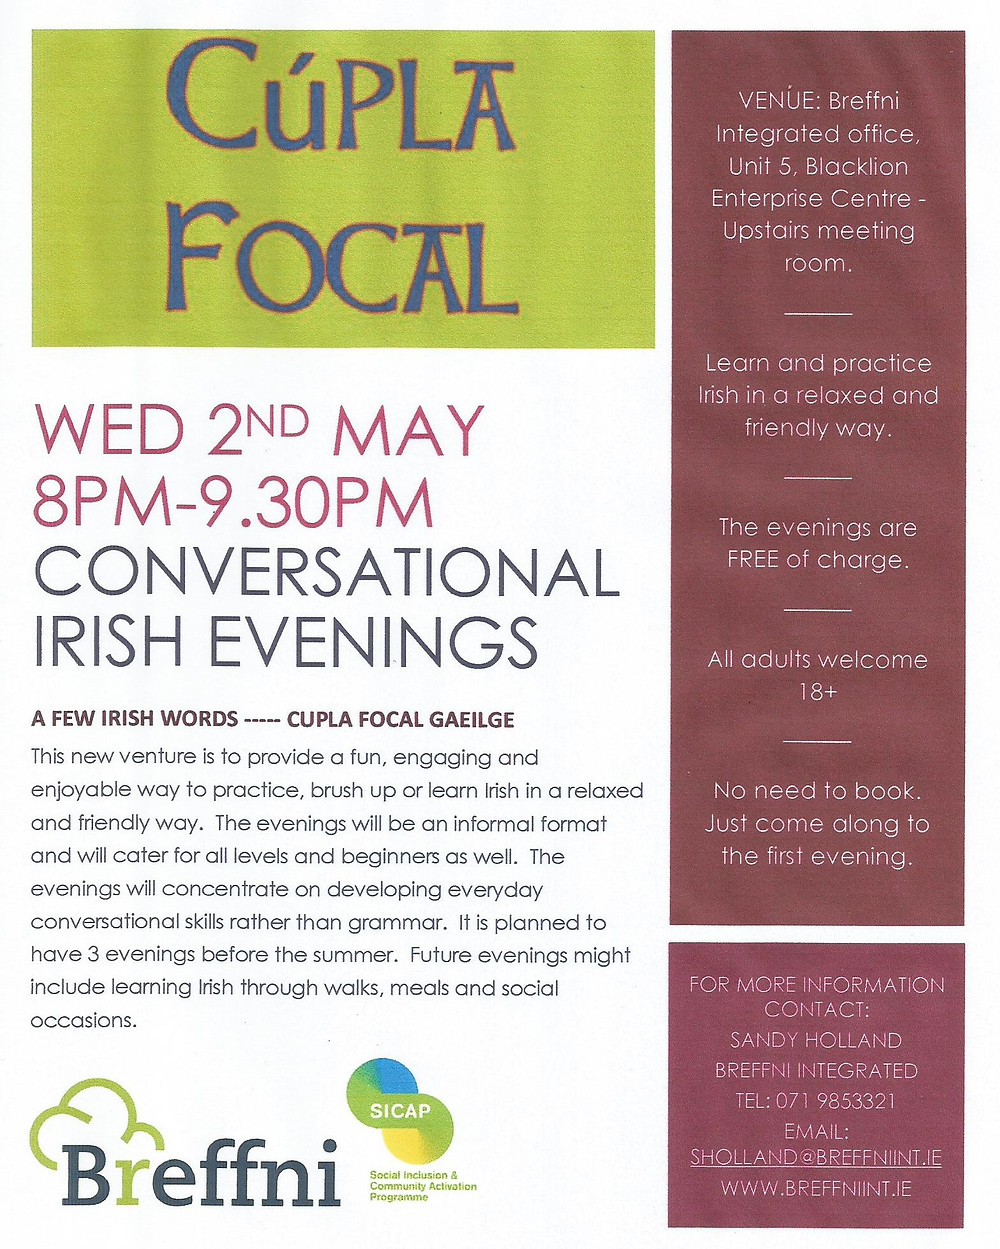 Conversational Irish evening Wed 2nd May 8-9.30pm, Blacklion